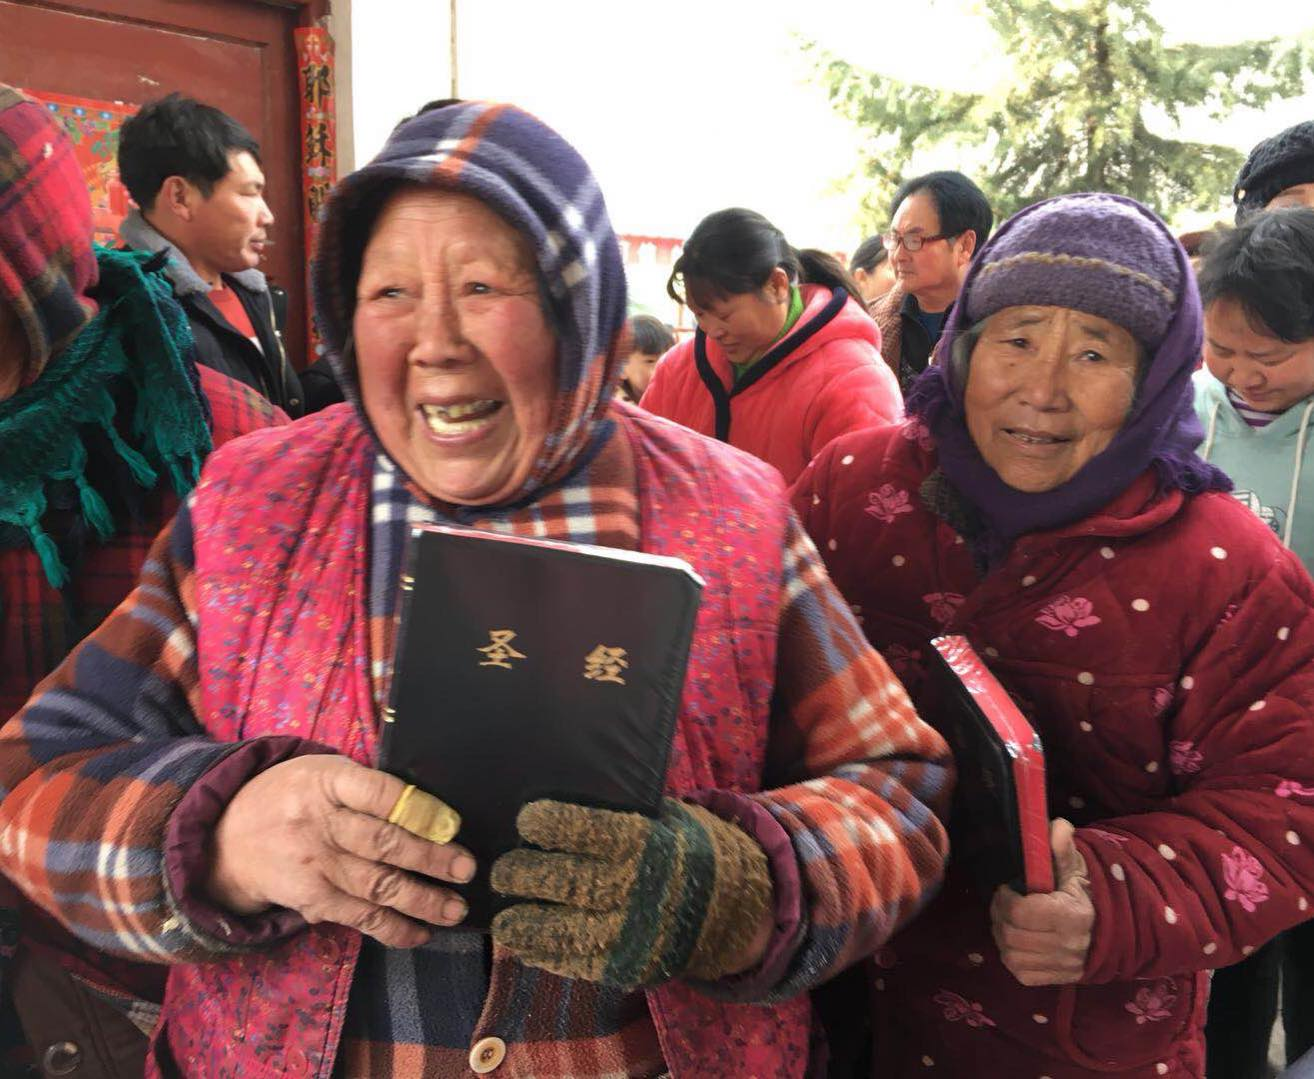 Planning on Bible distribution in China